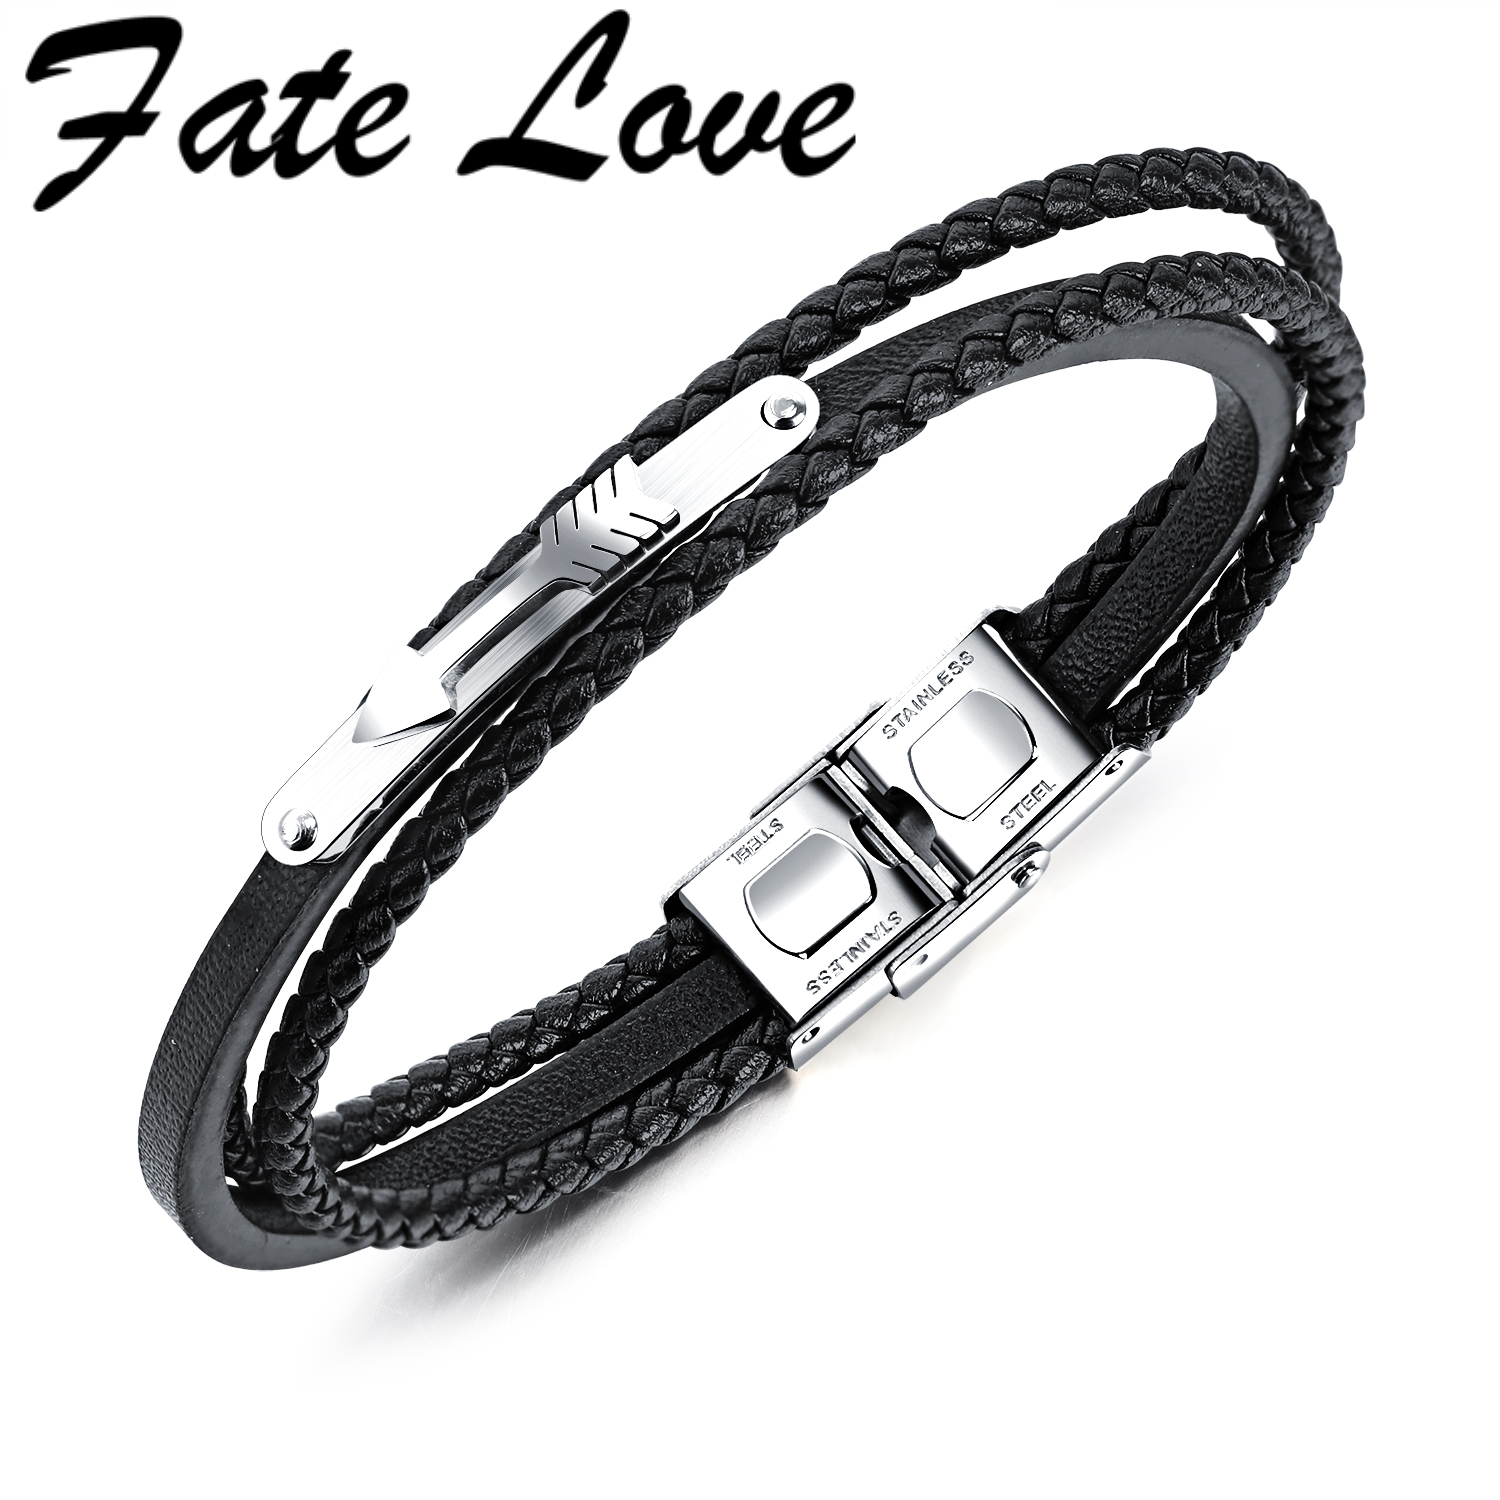 Fate Love Charm Leather Vintage Arrow Bracelet Multilayer Braided Wristband Bracelet Men Pulseira Jewelry Accessories FL1228